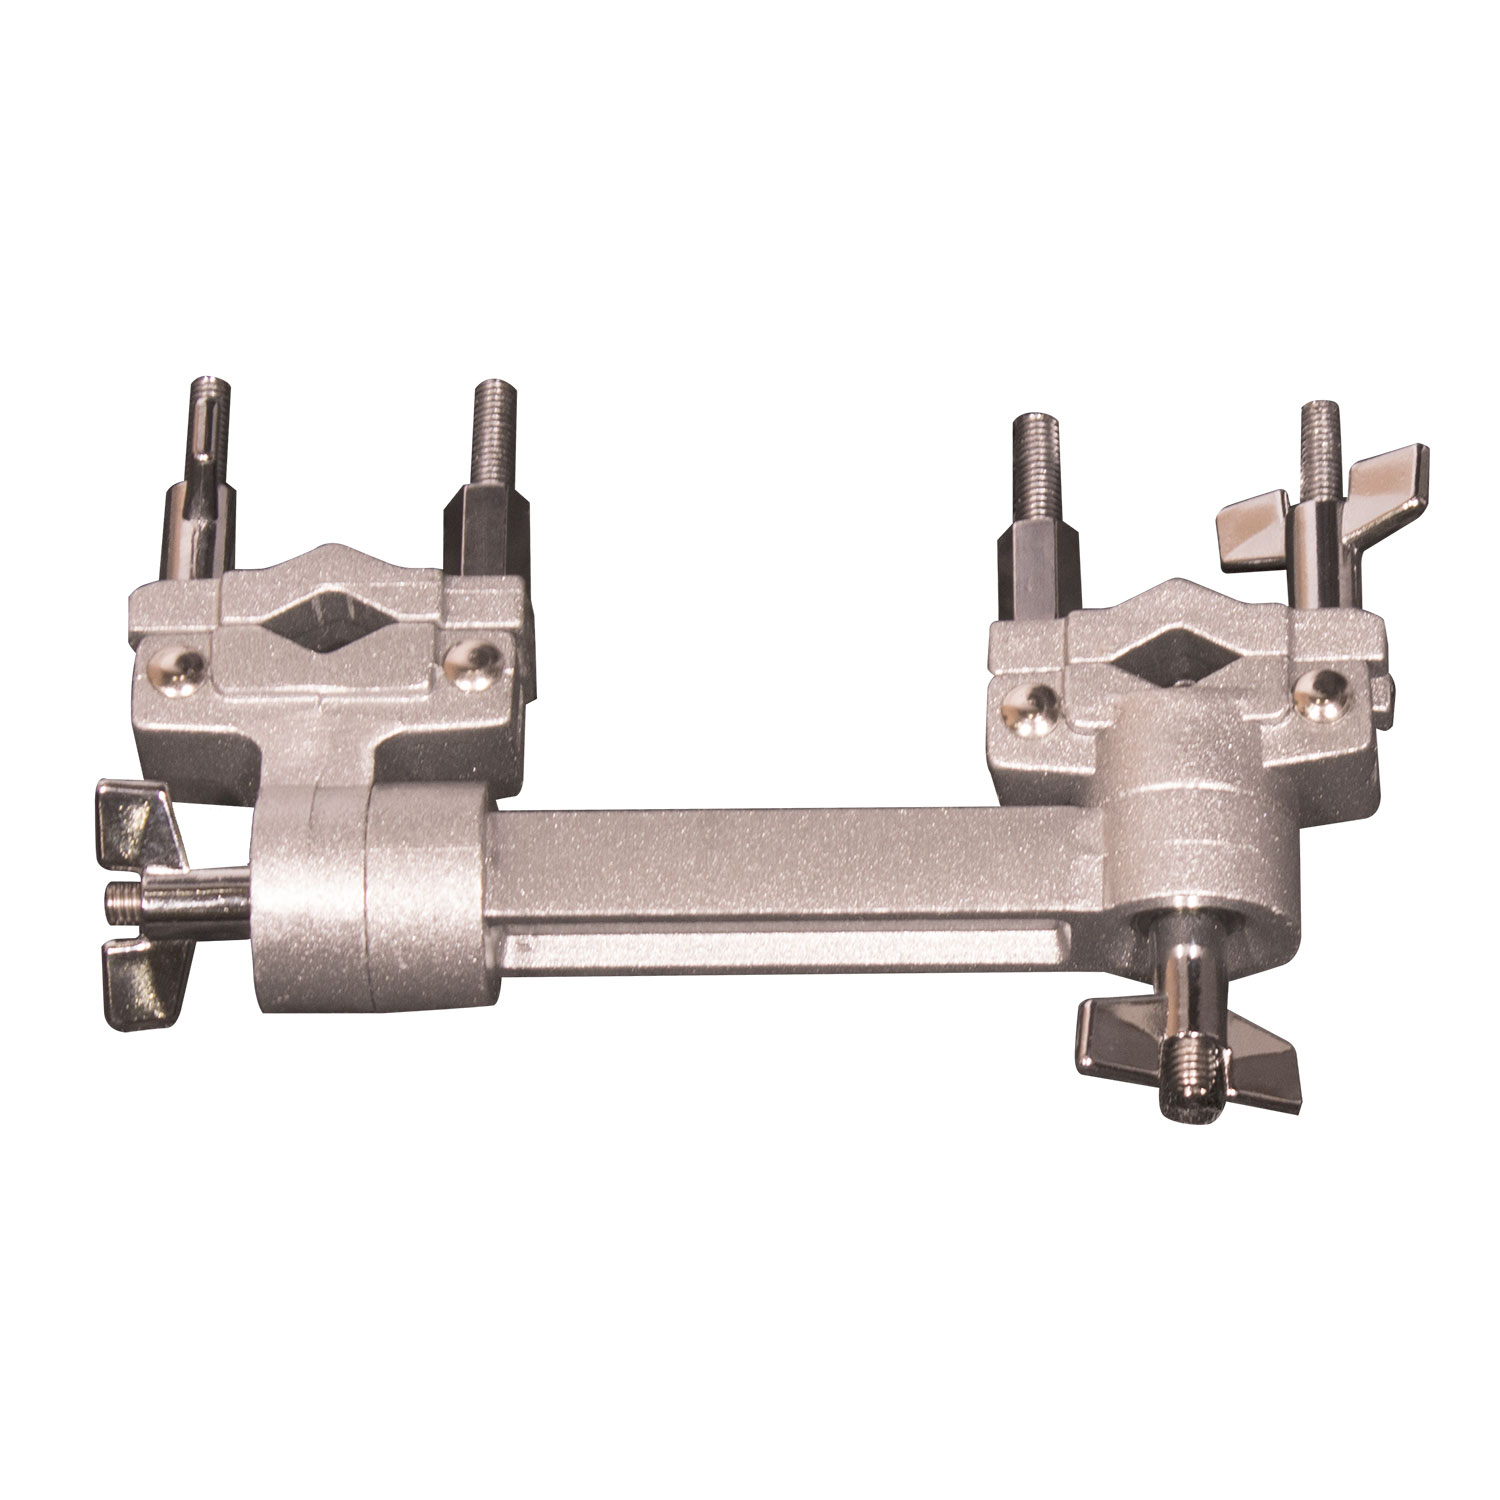 Adjustable Drum Bracket/Clamp